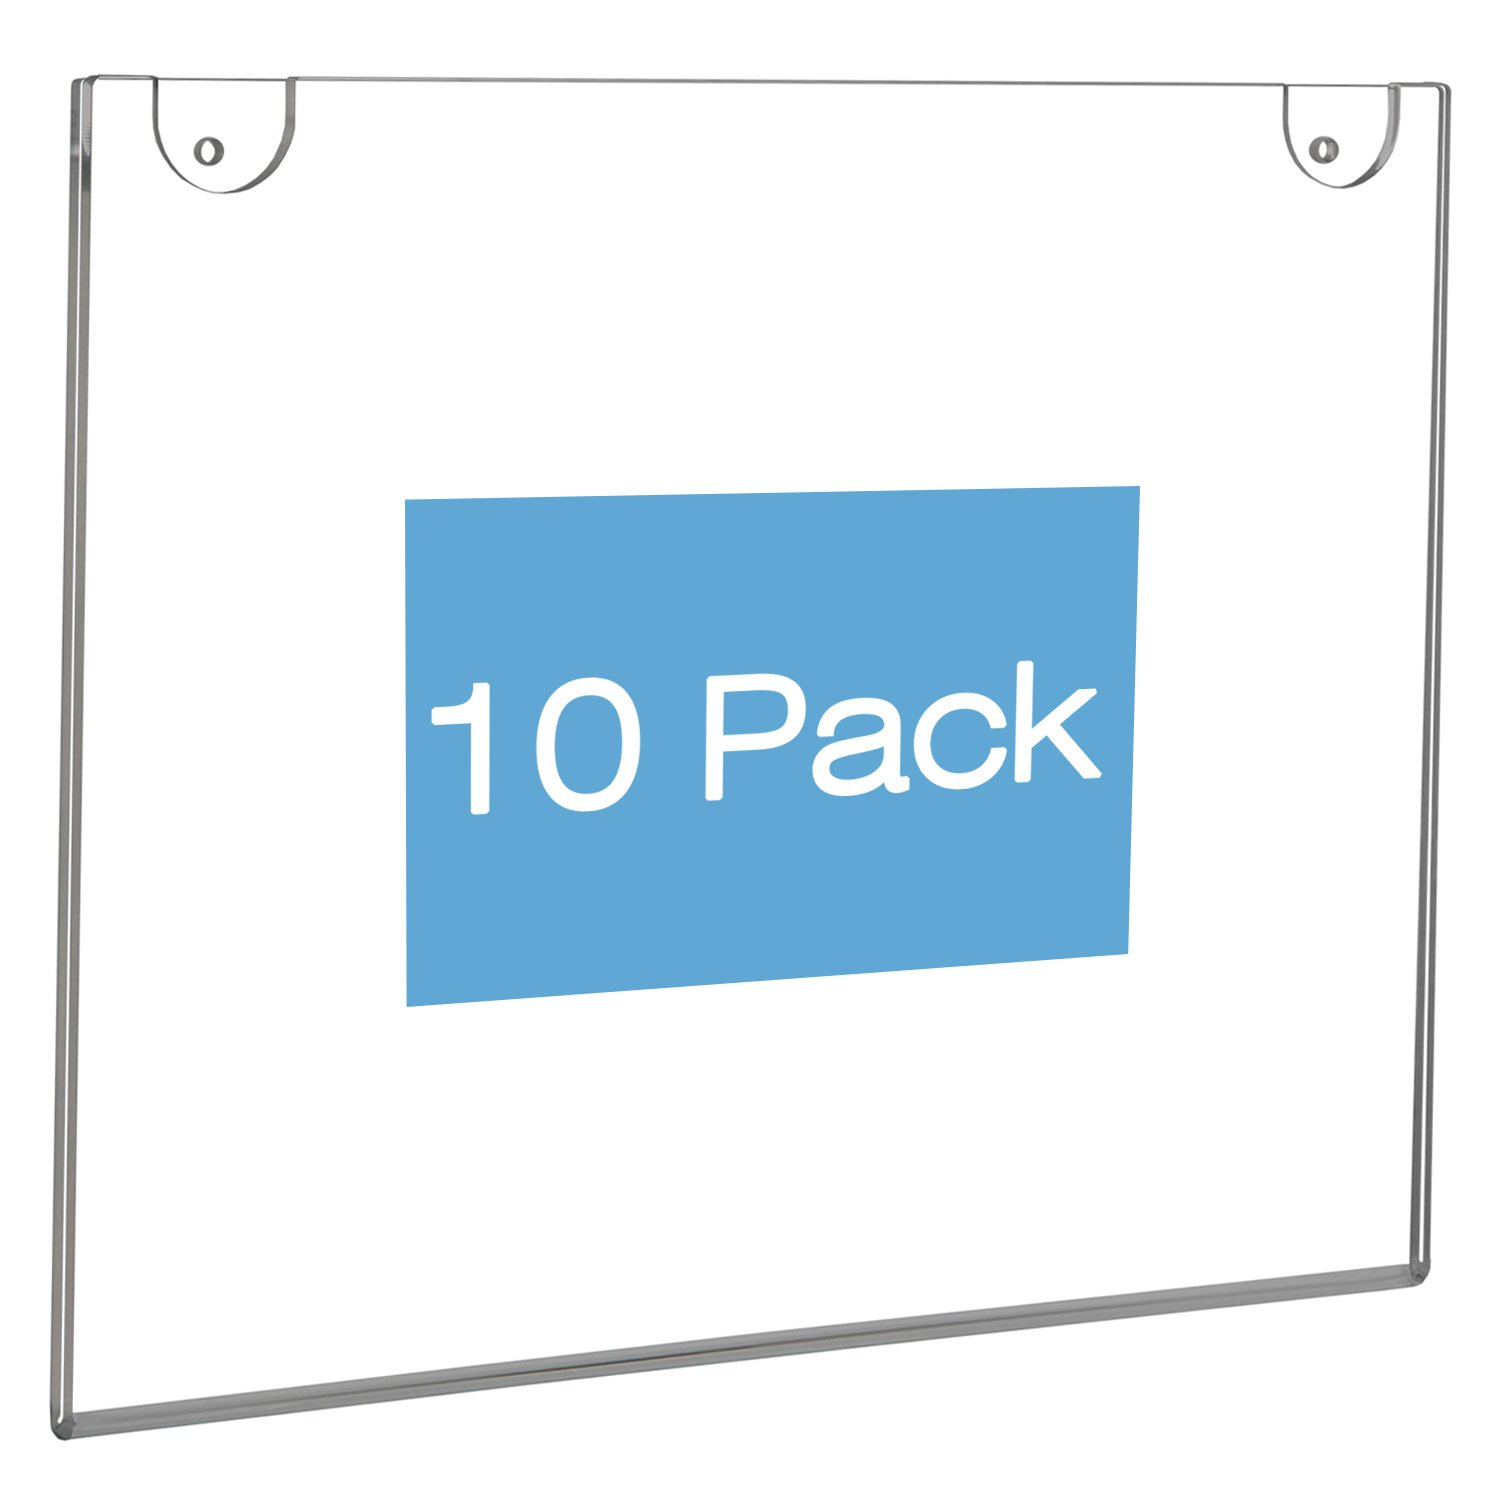 NIUBEE Wall Mount Sign Holder 11 x 8.5 Inch- Clear Acrylic Picture Frame for Paper- Horizontal(10 Pack)